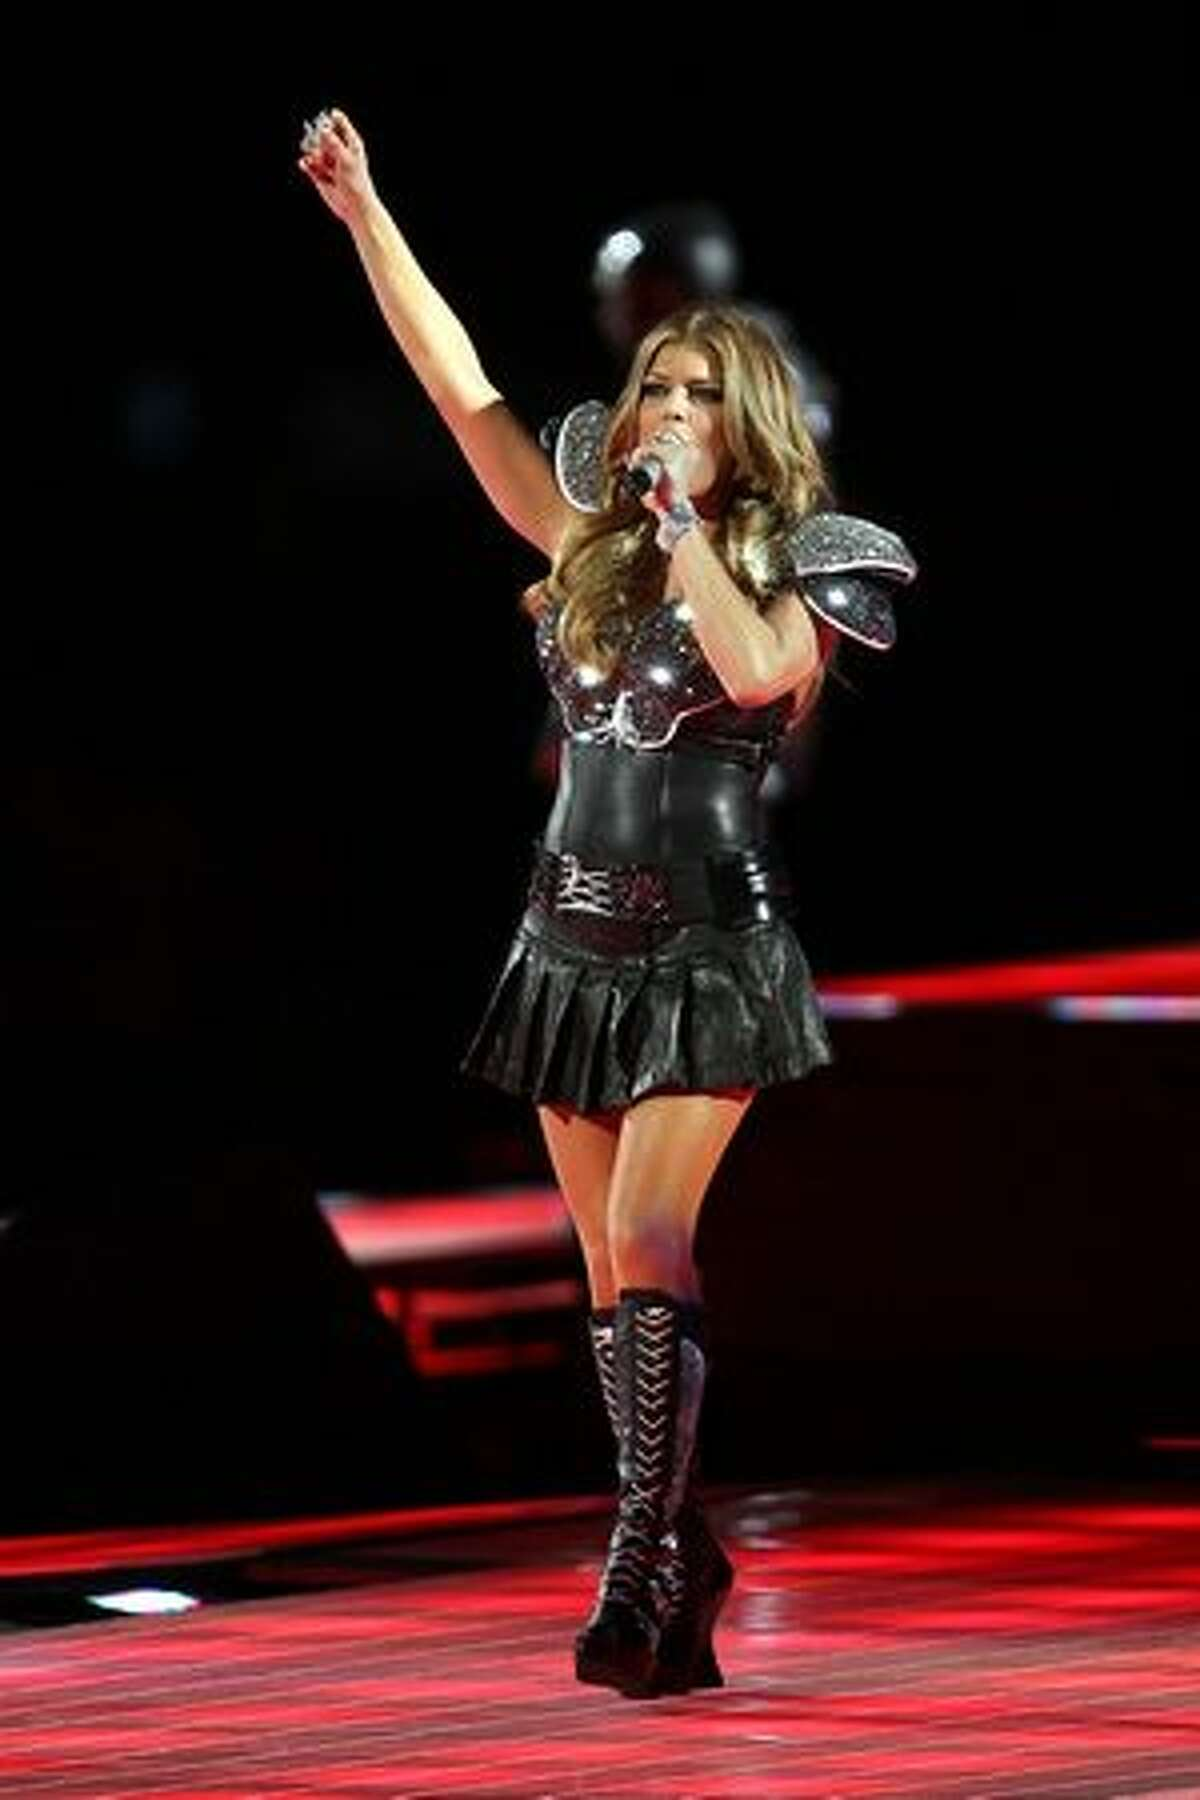 Fergie of the Black Eyed Peas performs.